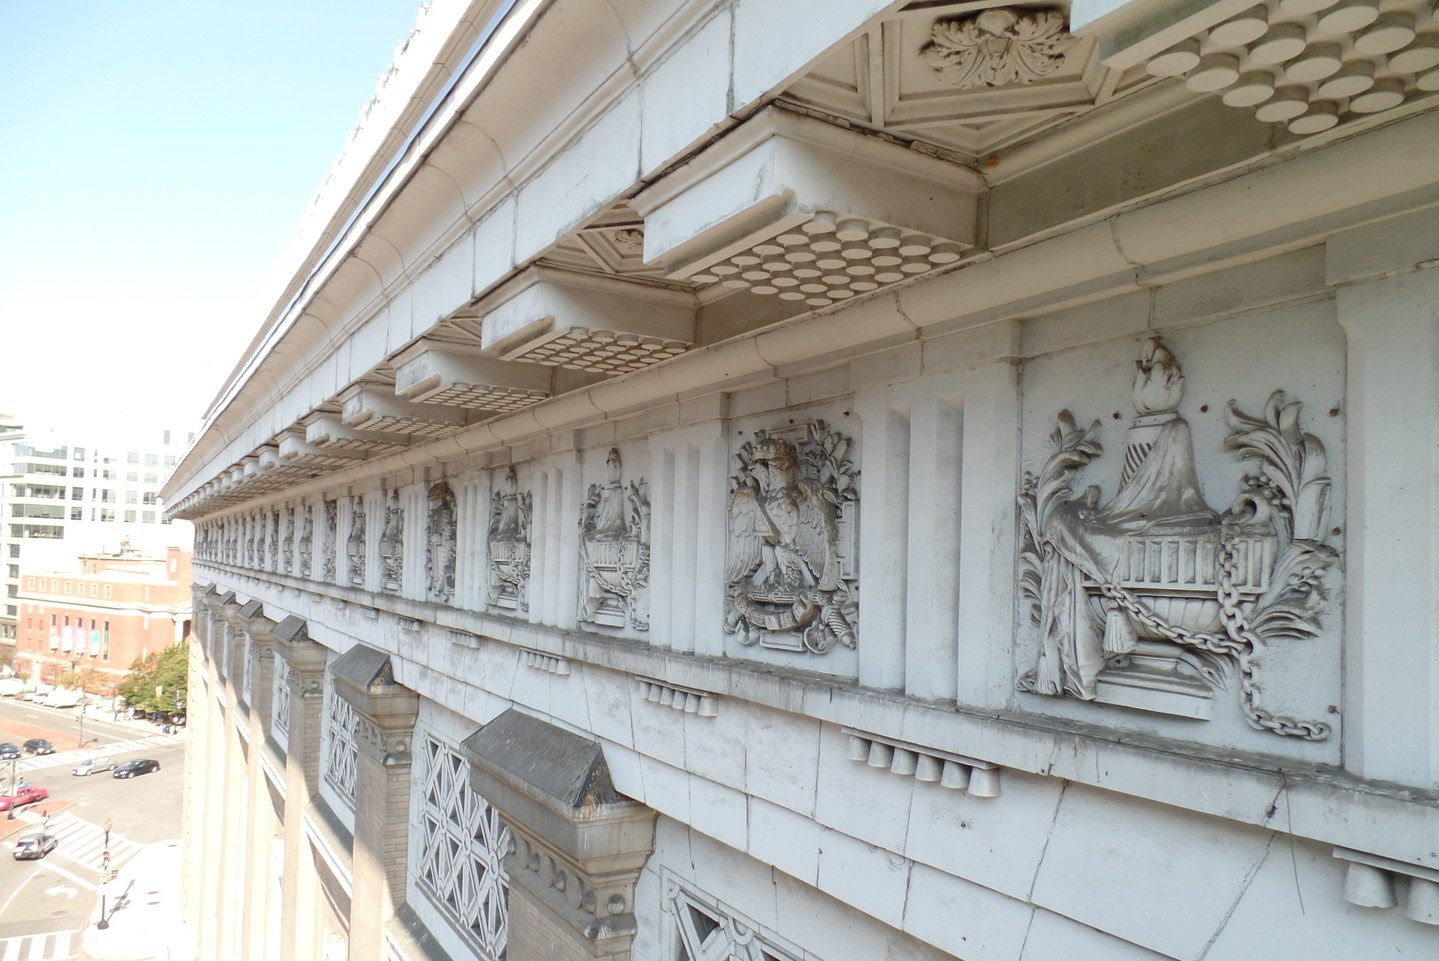 Detail of the building exterior's intricate roof architectural decoration.